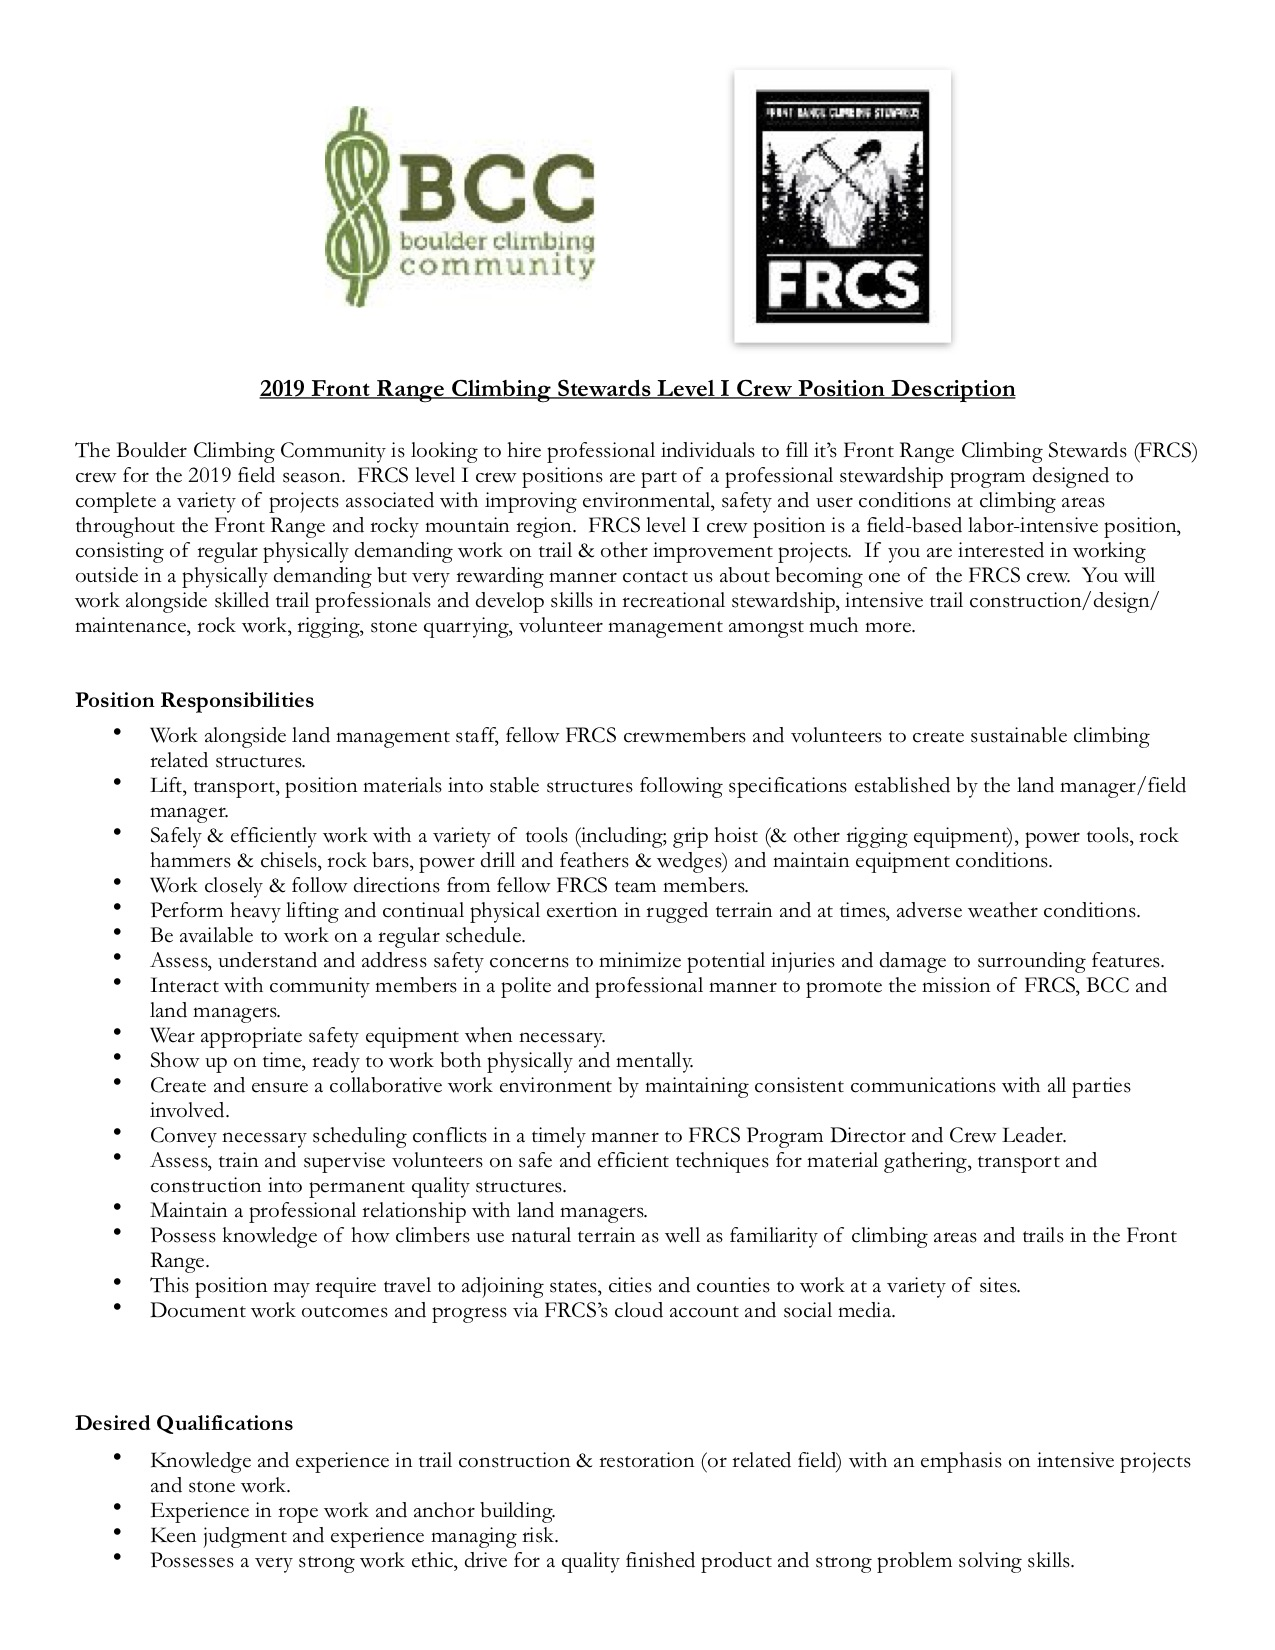 2019 FRCS Level I crew position description.jpg